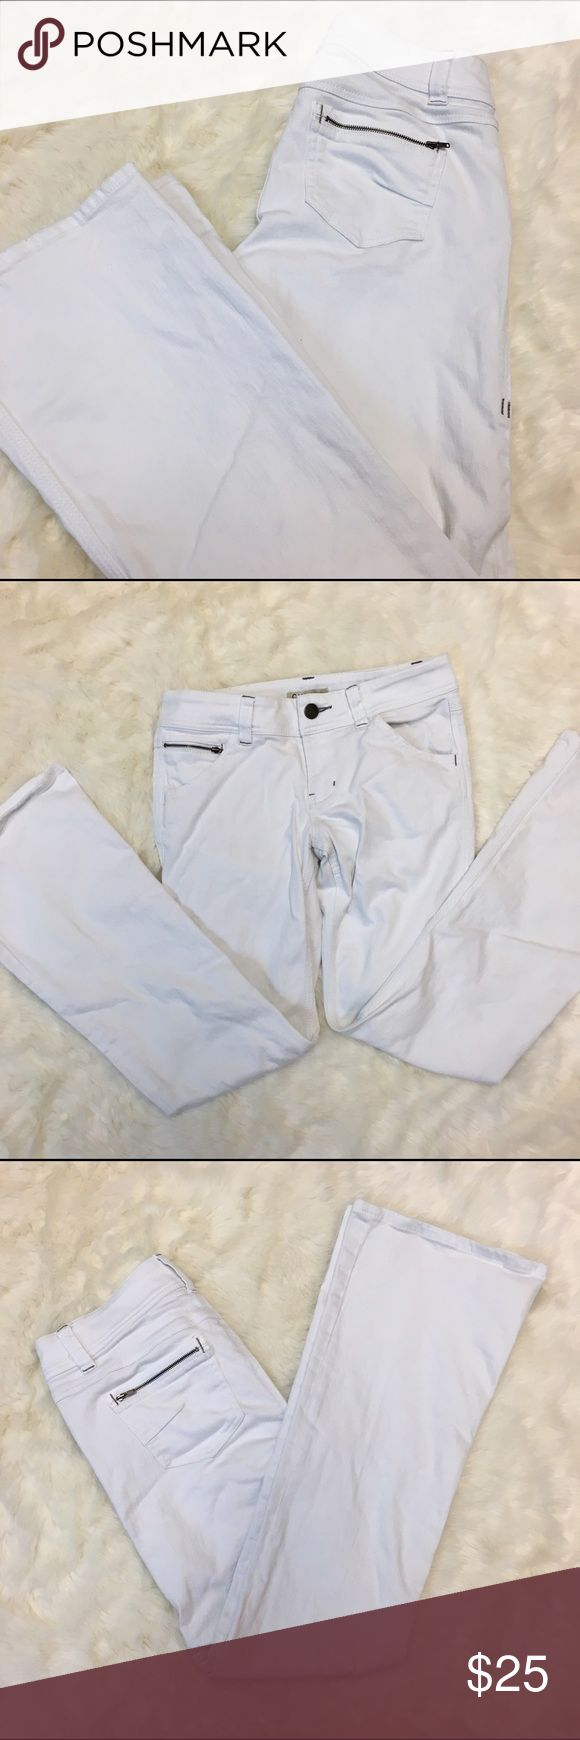 CAbi White Bootcut Jeans CAbi White Bootcut Jeans in very good condition. One front pocket and back pockets have zippers. CAbi Jeans